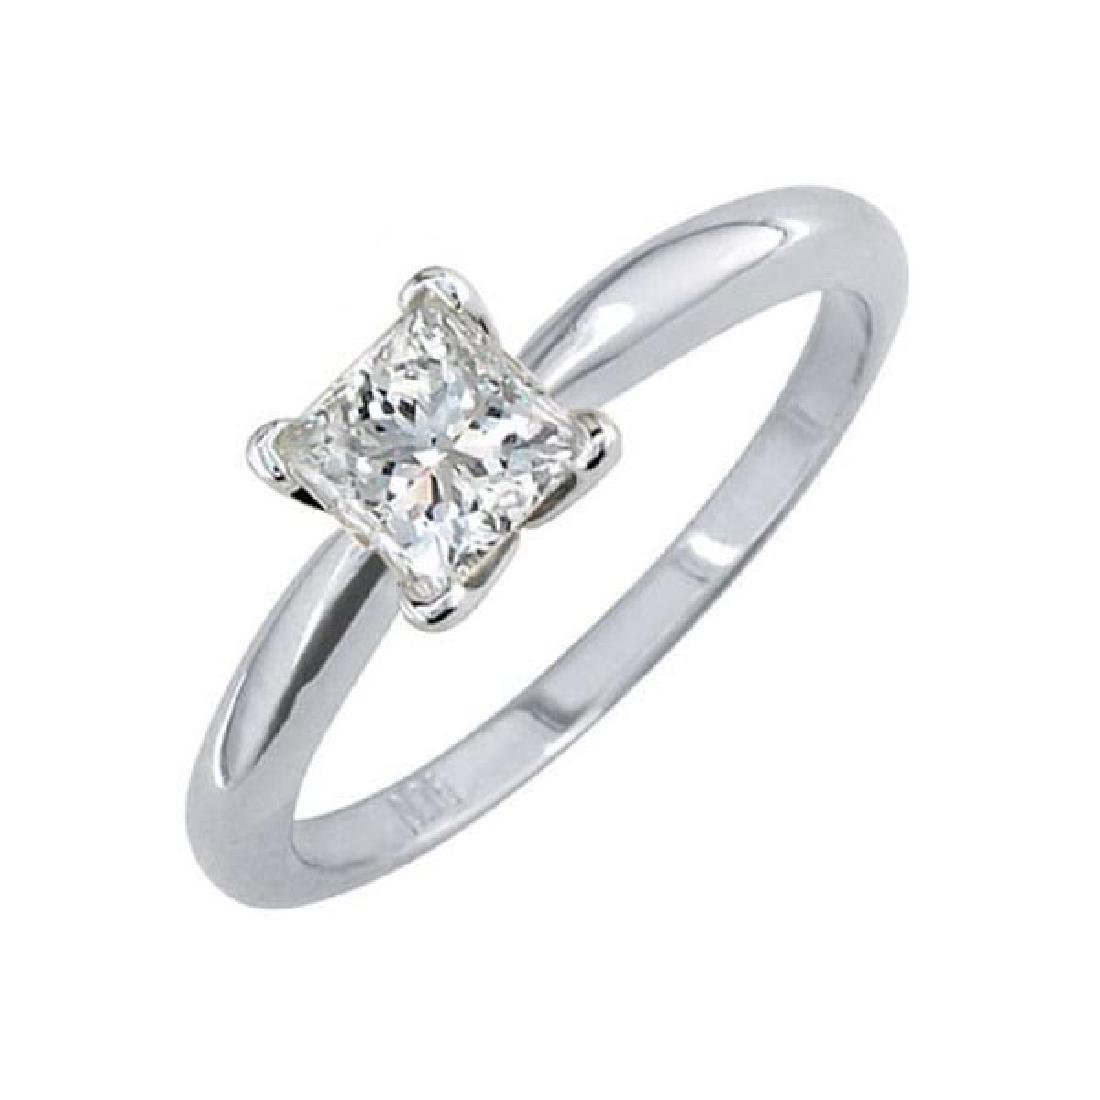 Certified 0.74 CTW Princess Diamond Solitaire 14k Ring